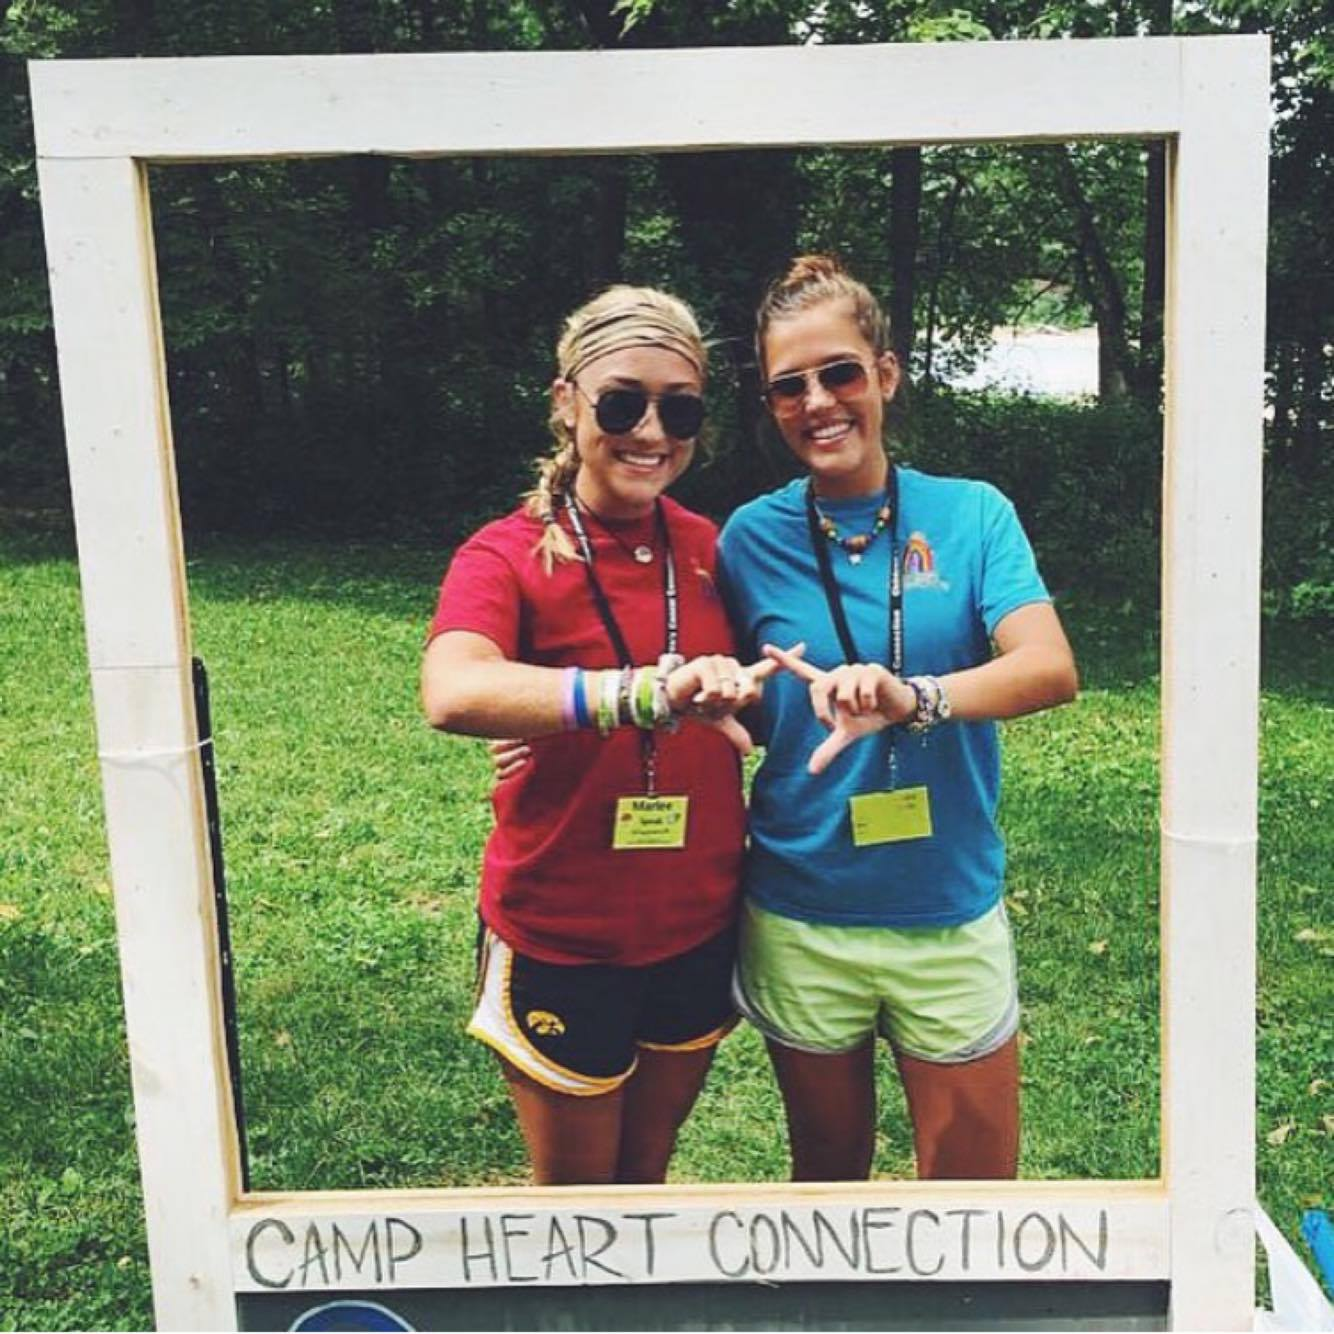 Marlee and Kelsey spent the last of their summer break as counselors at Camp Heart Connection for the siblings of kiddos who have had cancer.